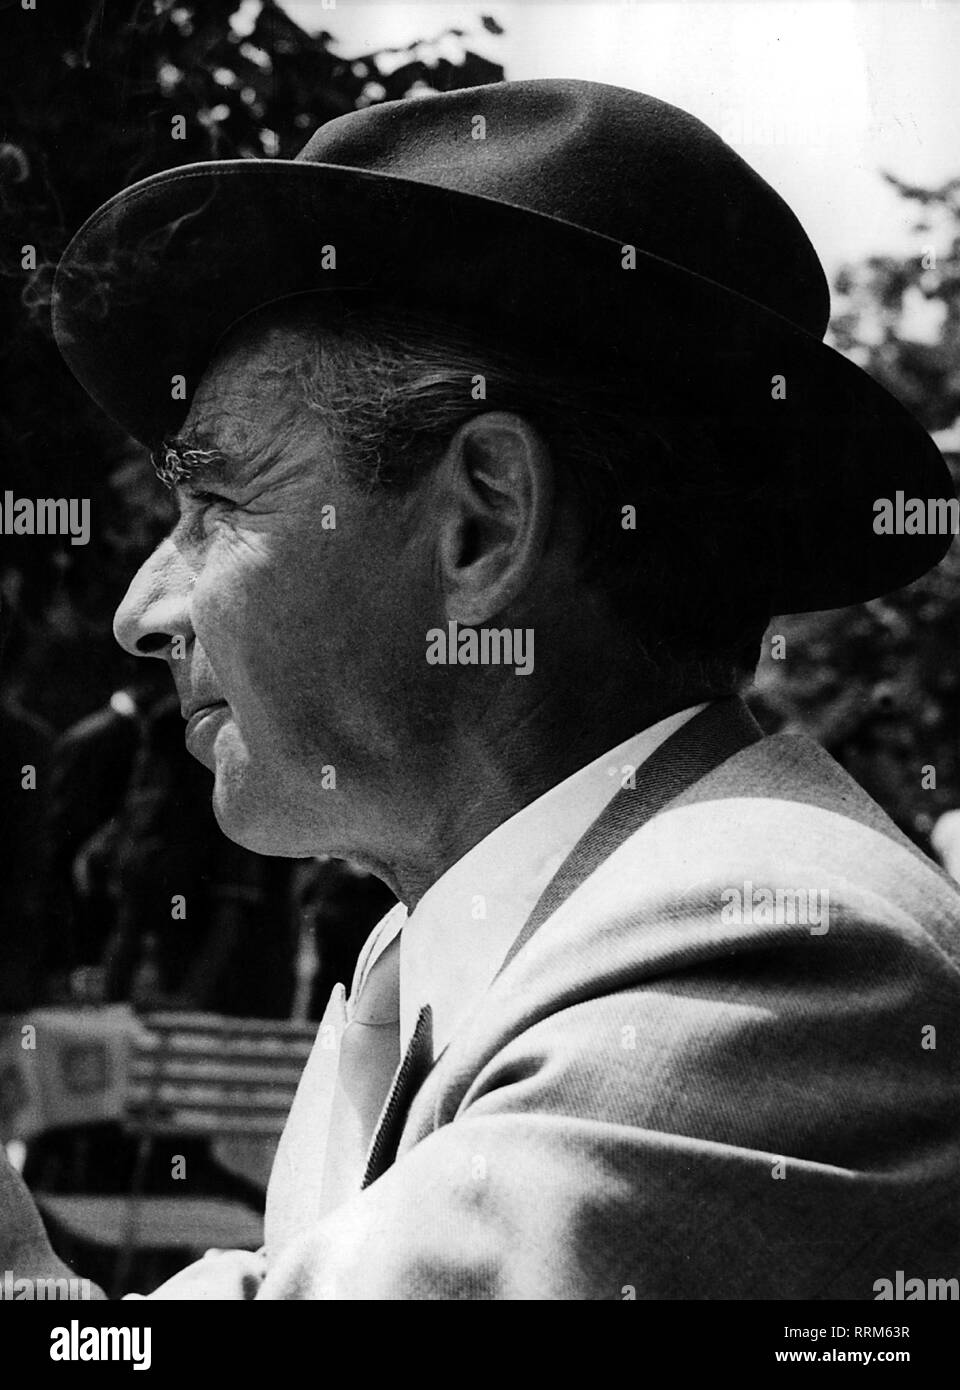 Kaestner, Erich, 23.2.1899 - 29.7.1974, German author / writer, portrait, Additional-Rights-Clearance-Info-Not-Available - Stock Image